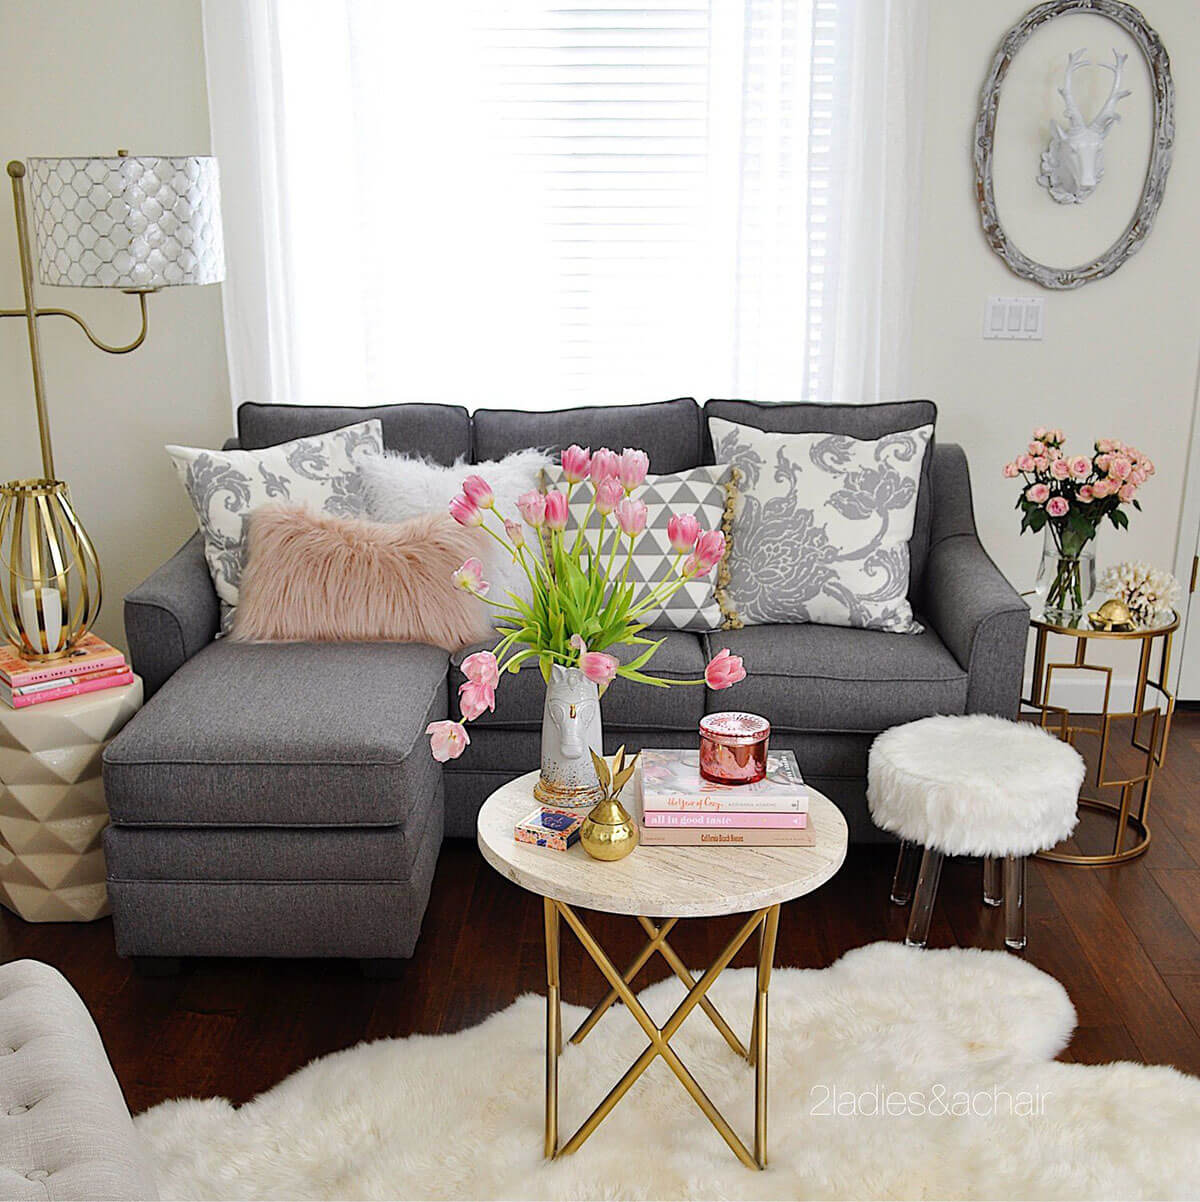 25 best small living room decor and design ideas for 2019 - How to decorate a gray living room ...